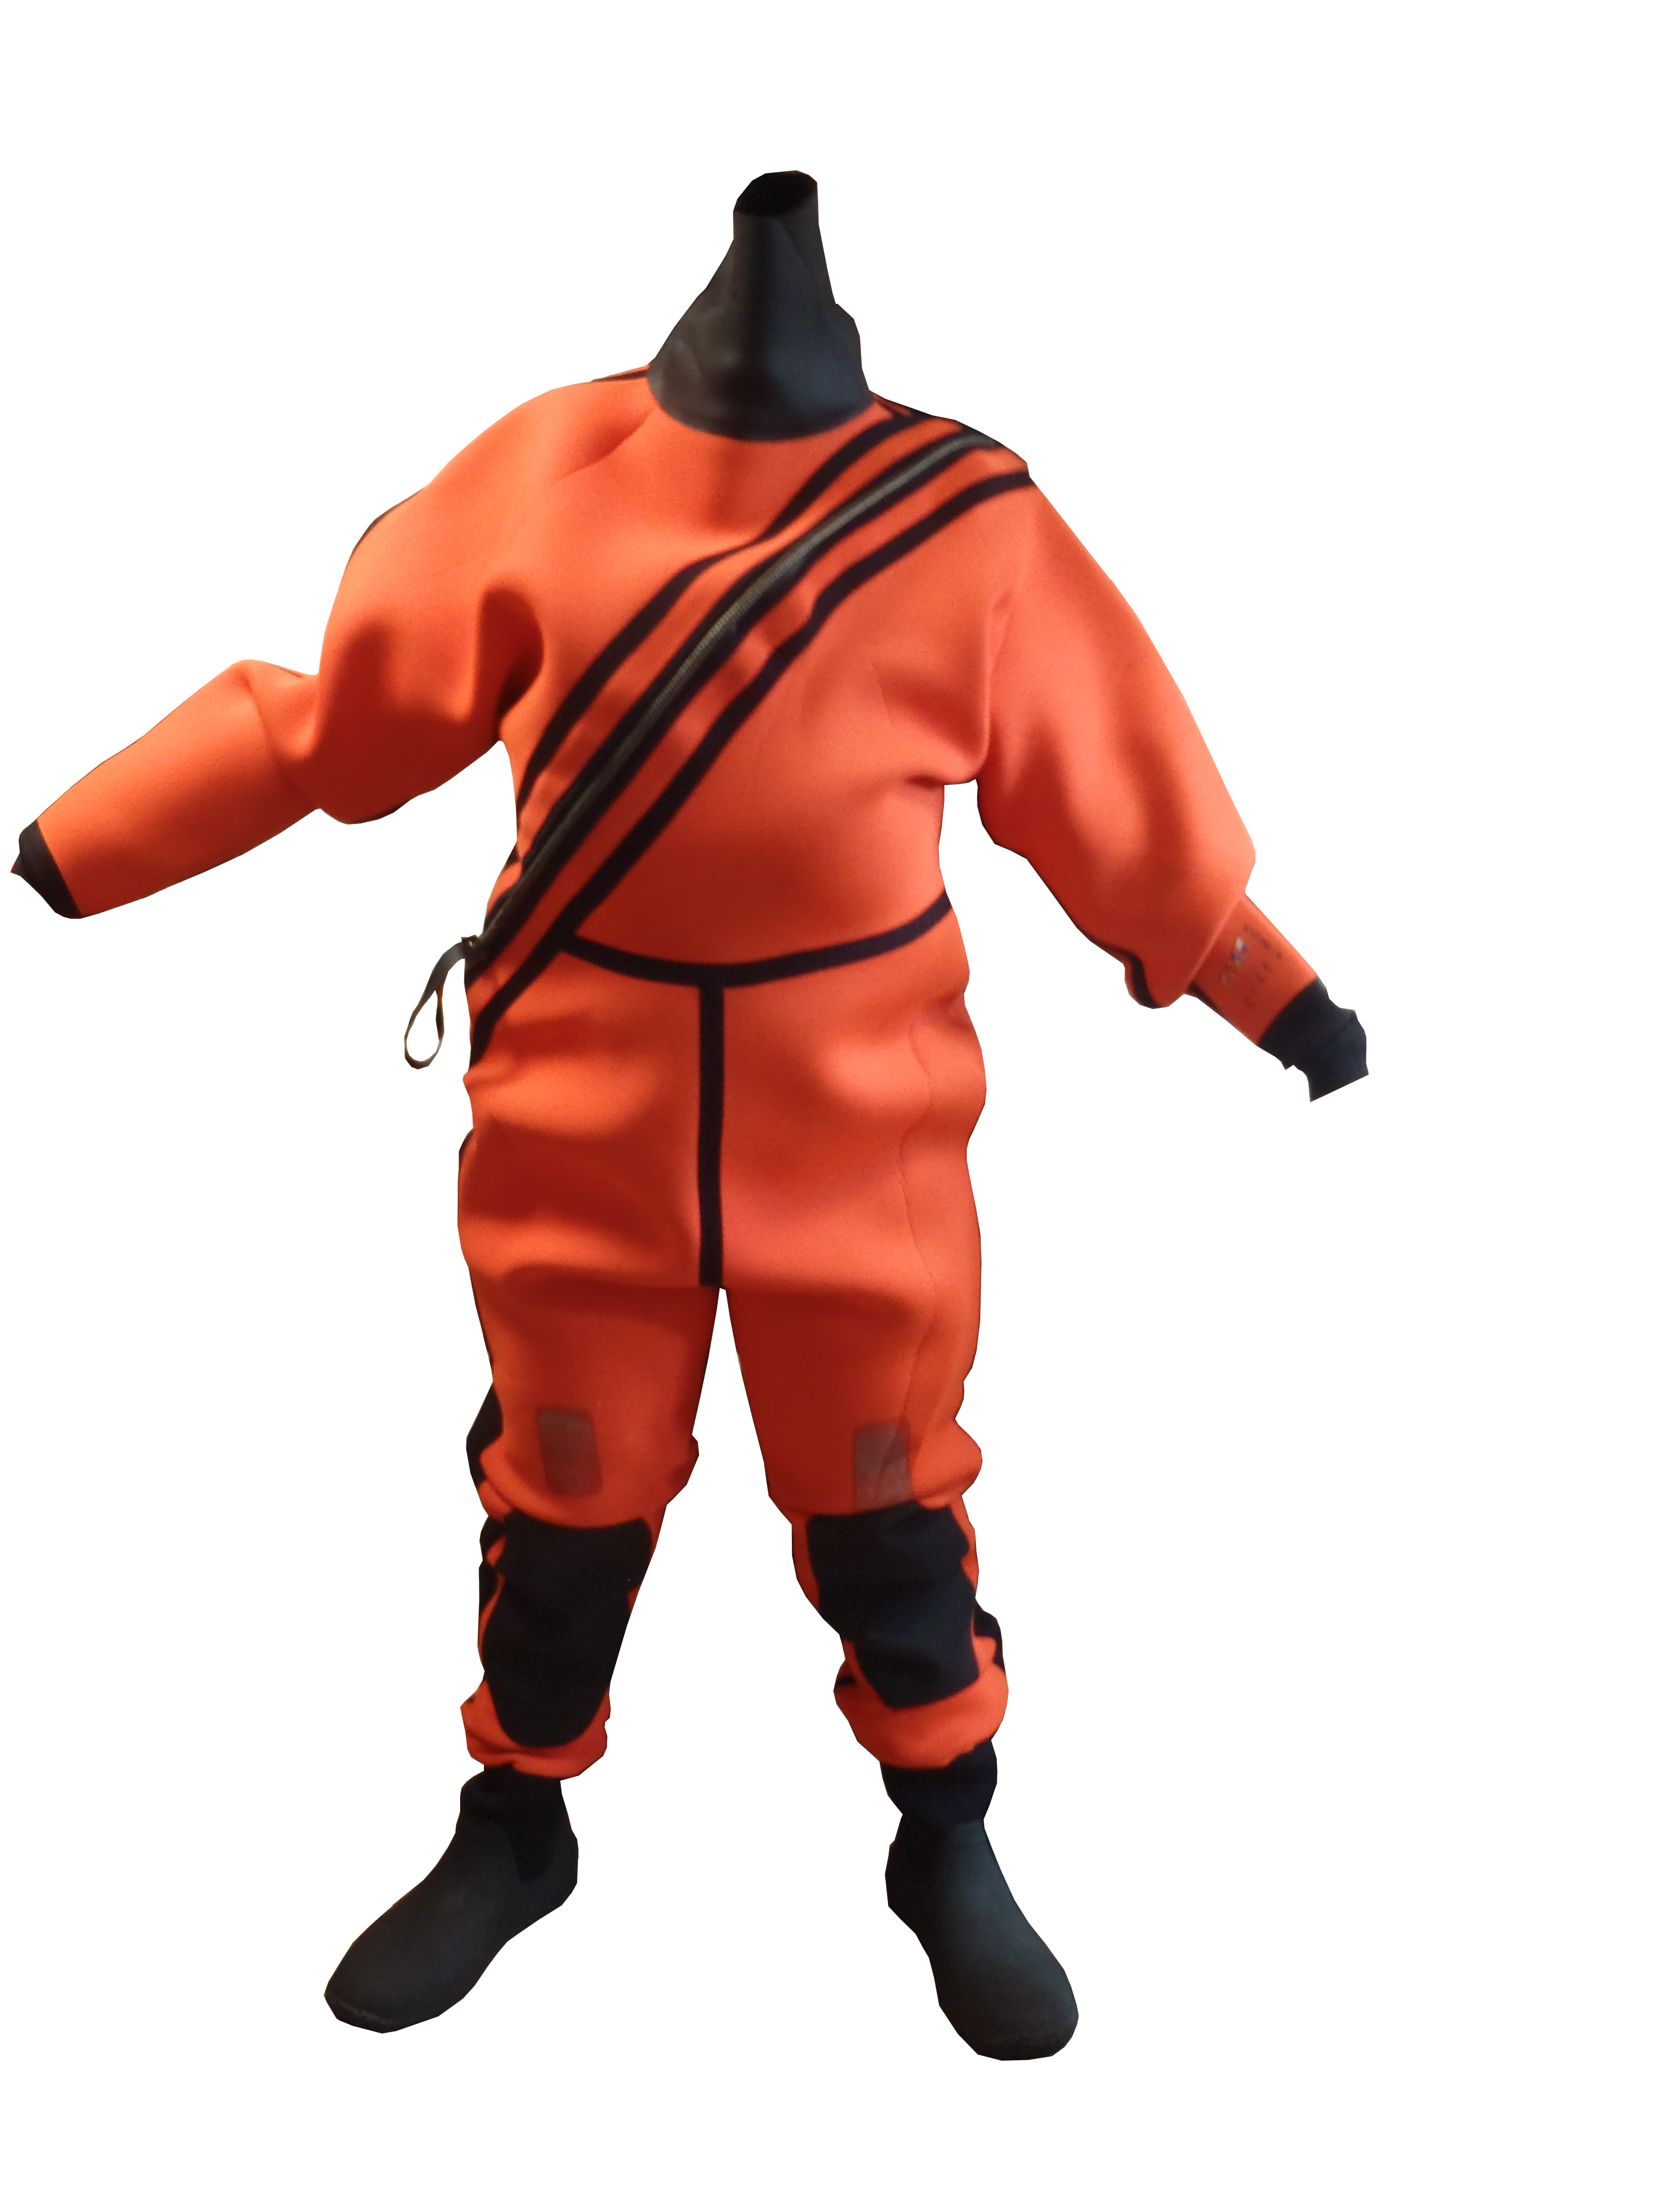 Lot 32 - Orange and Black Immersion Suit - Medium/Large - New